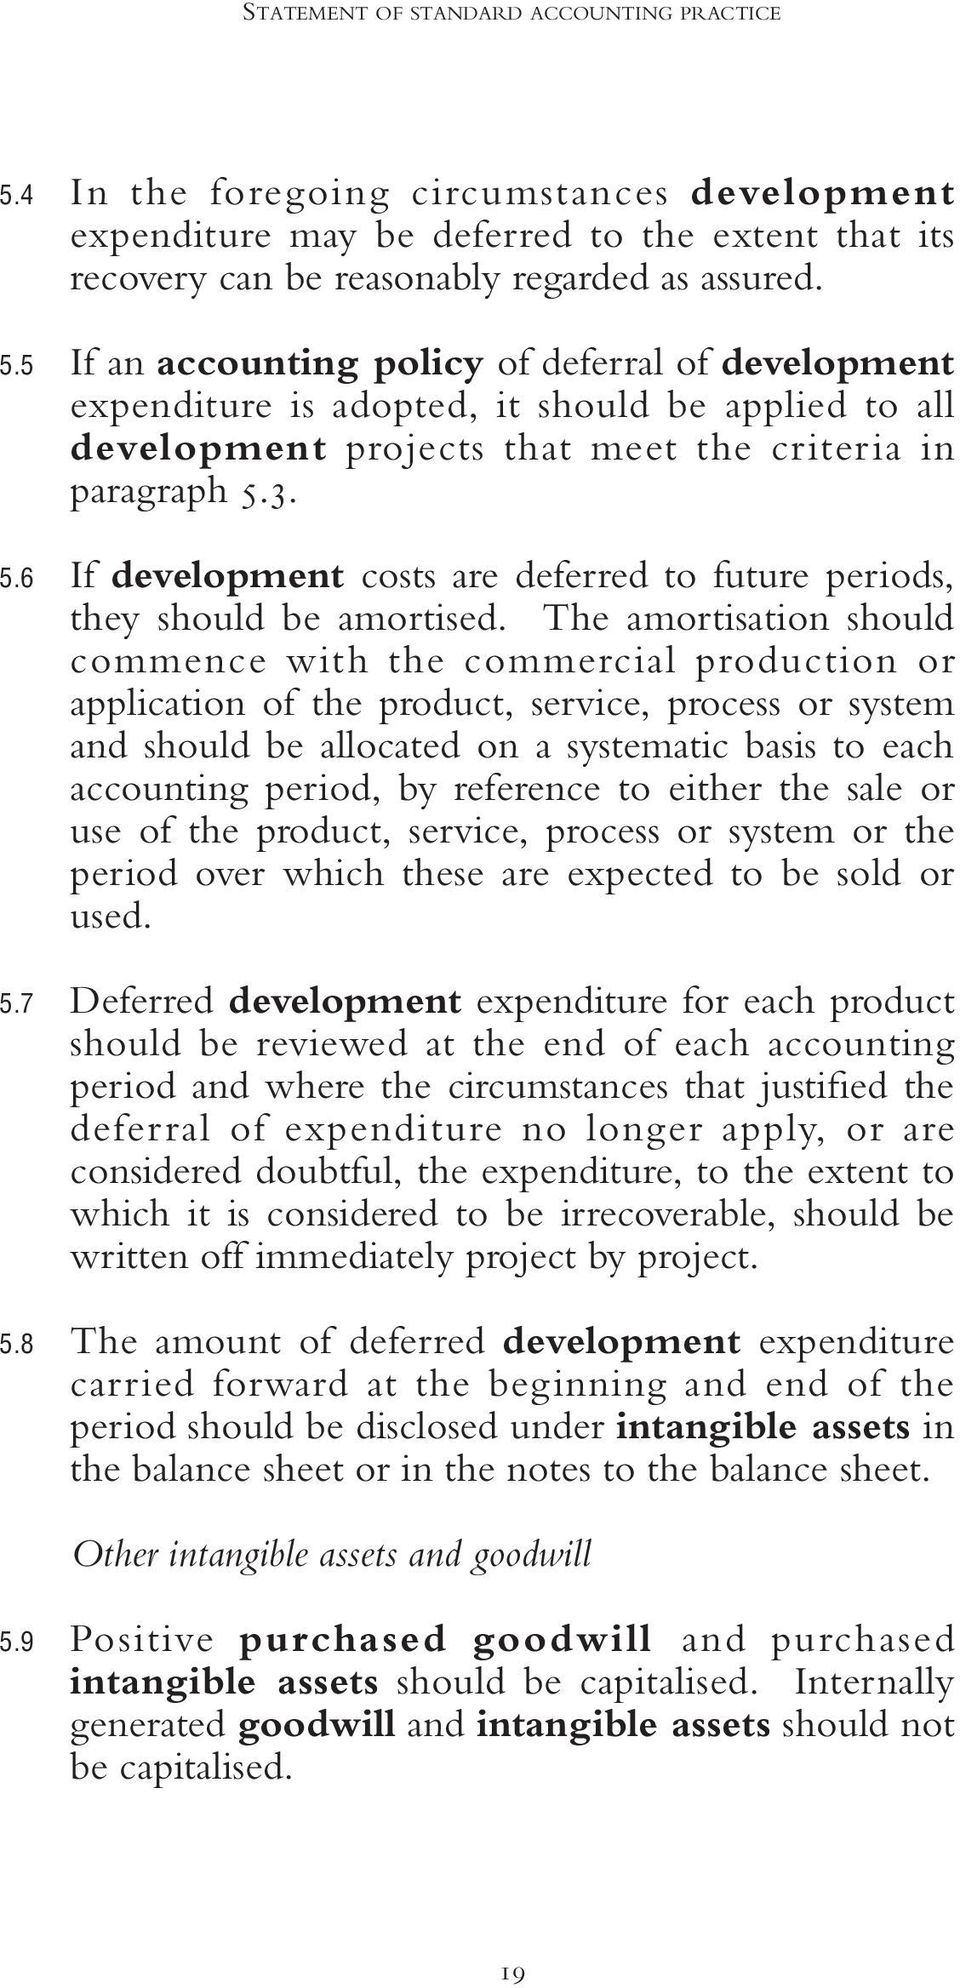 If an accounting policy of deferral of development expenditure is adopted, it should be applied to all development projects that meet the criteria in paragraph 5.3.